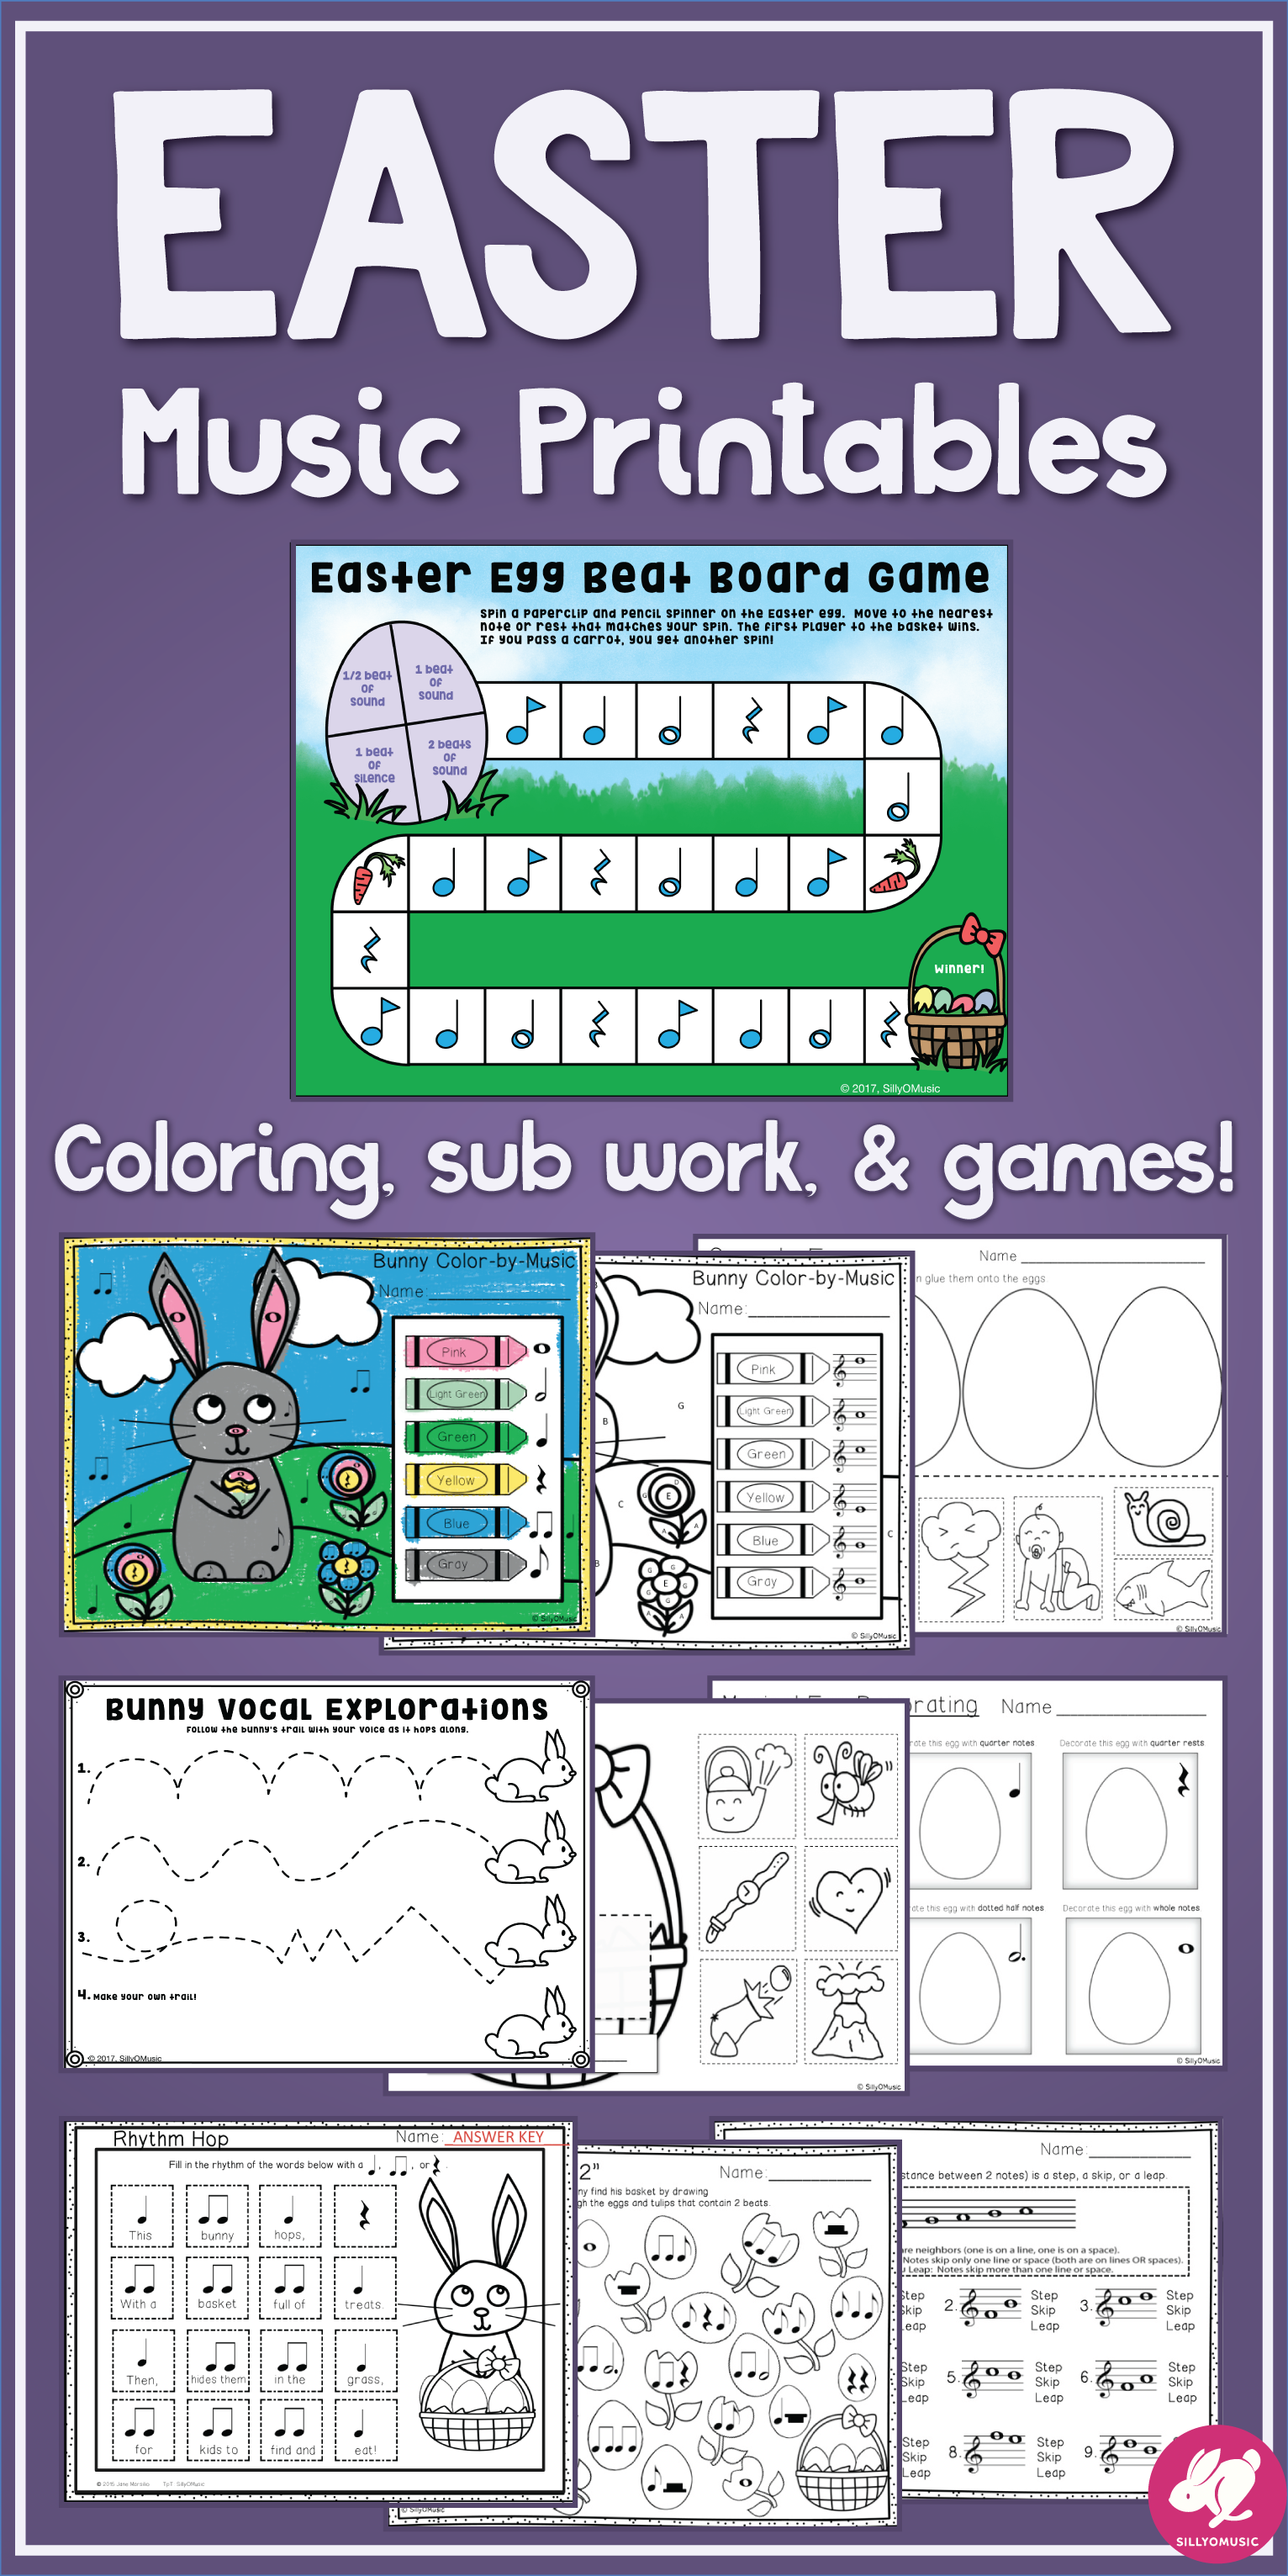 Easter Music Activities Worksheets Printable Games Glyph